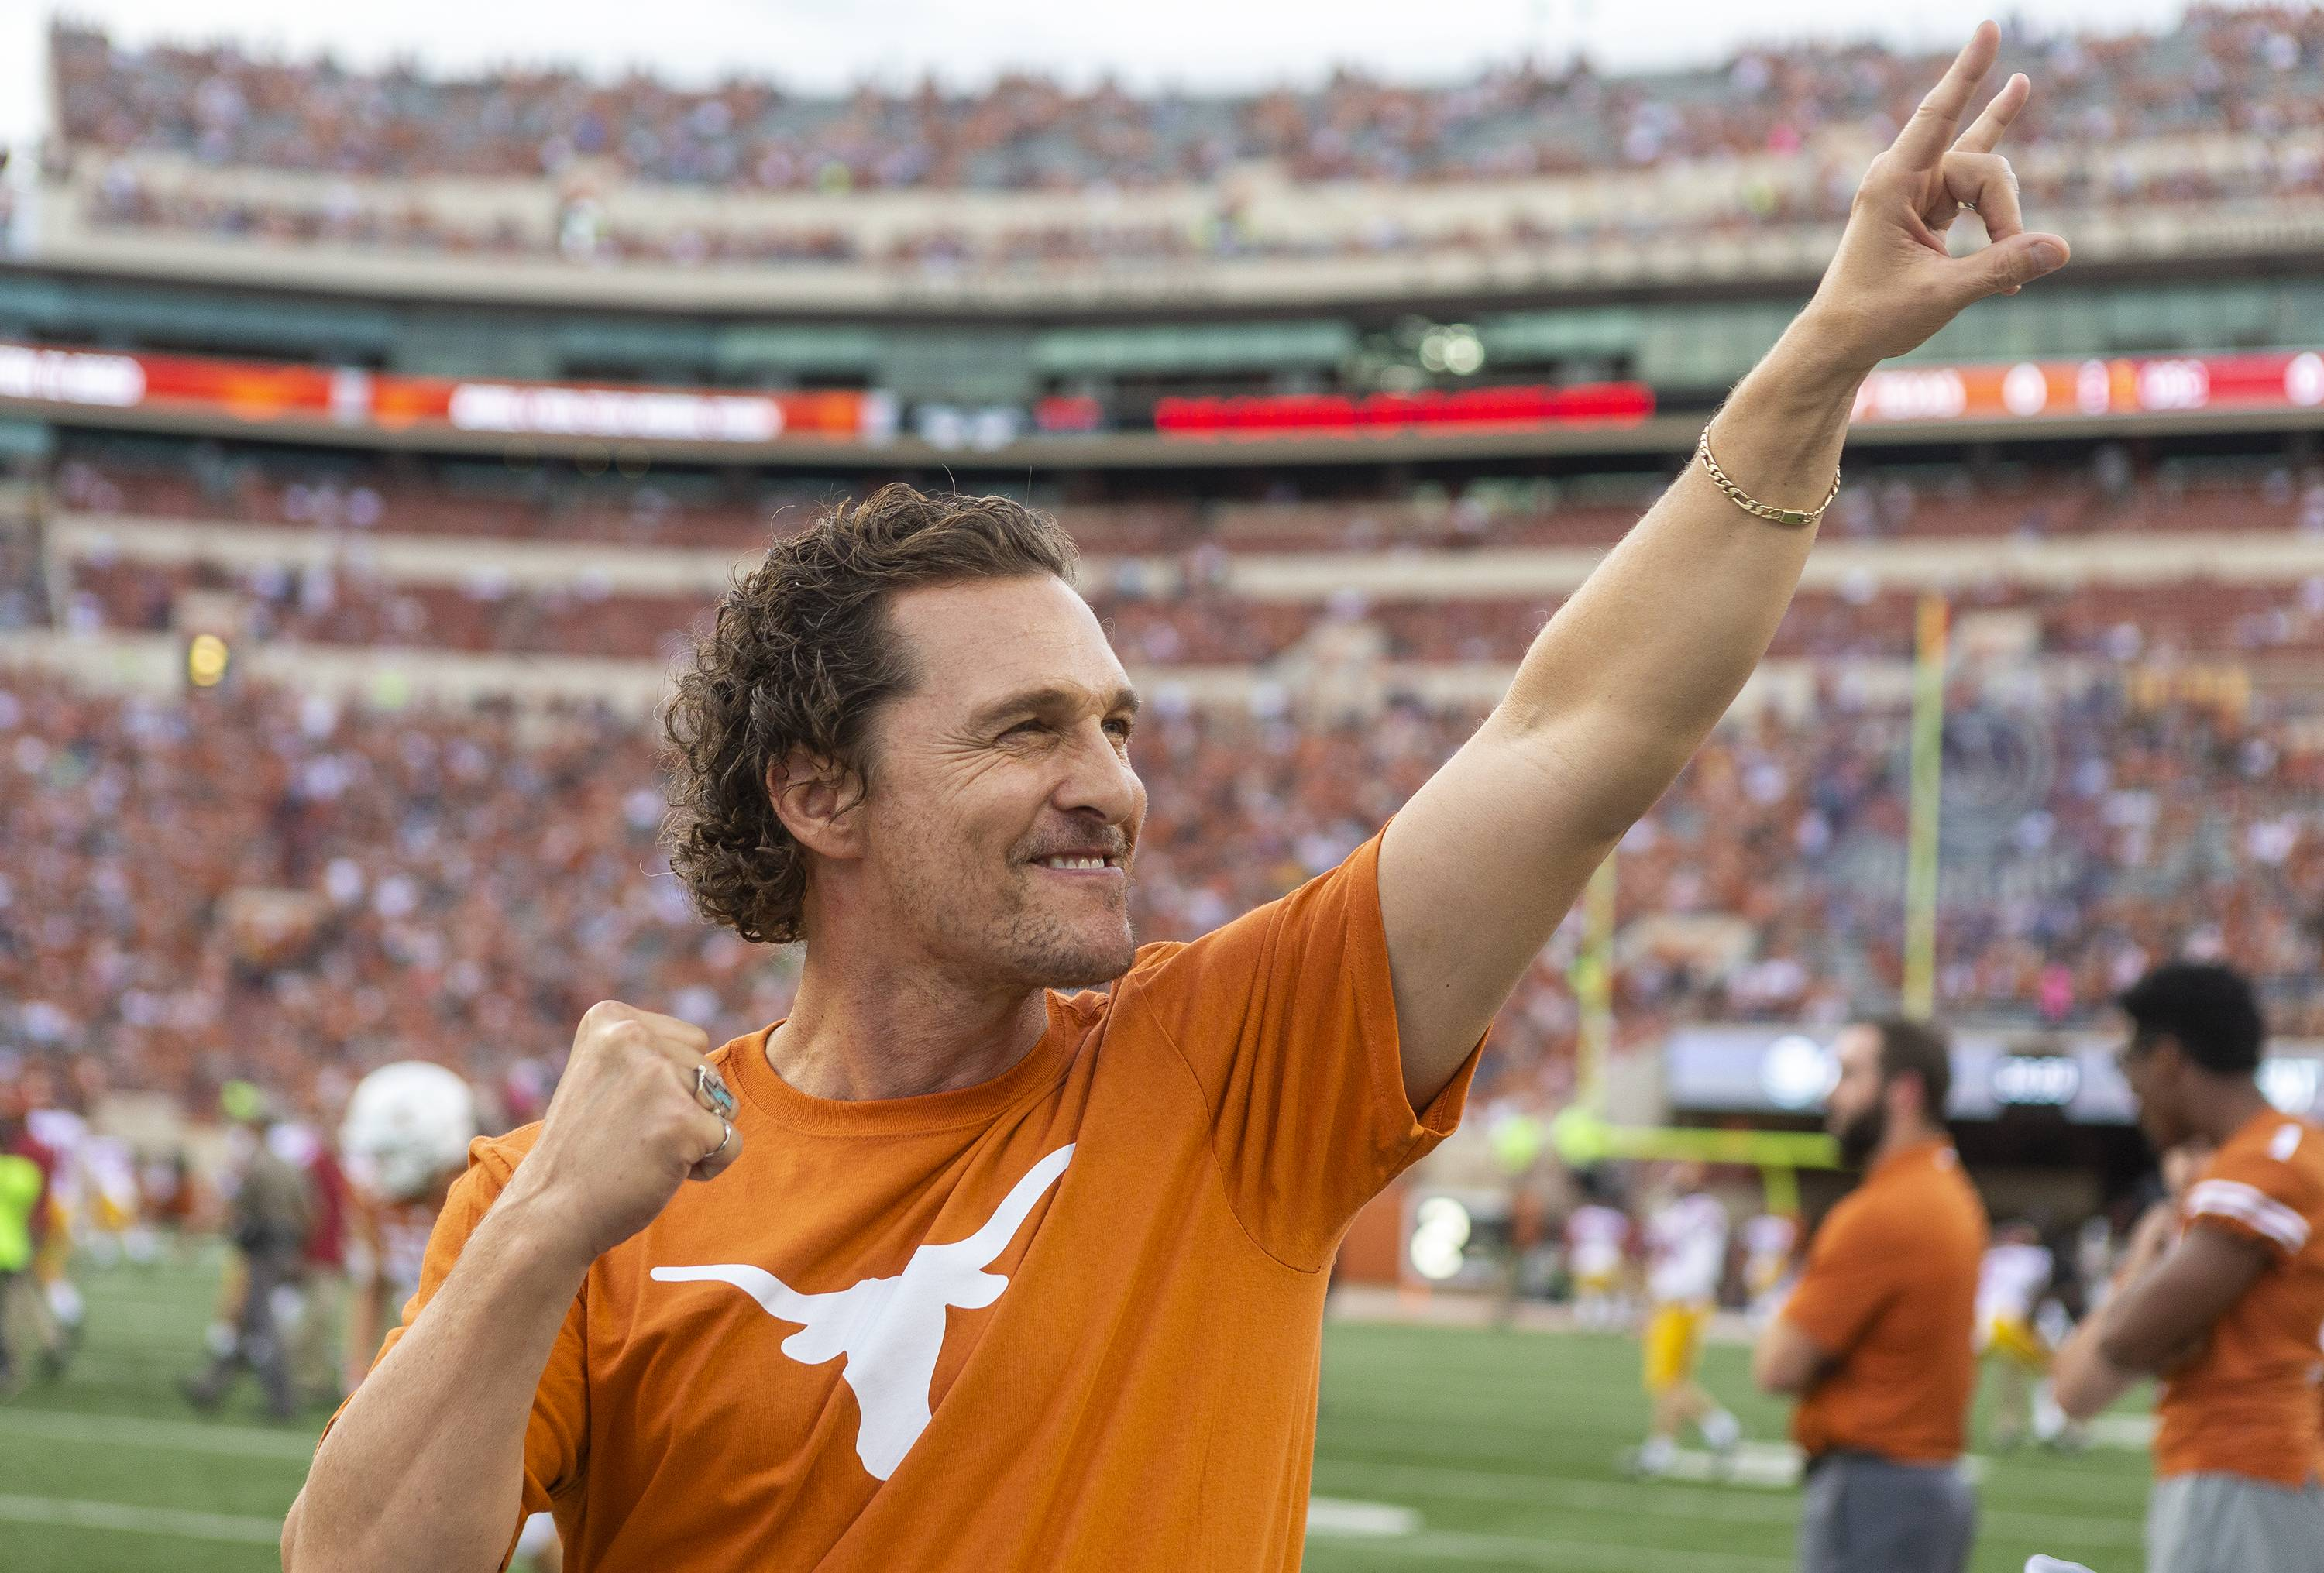 'He's trying to sell you a Lincoln MKZ': Texas fans respond to Sam Ehlinger's McConaughey-themed caption contest